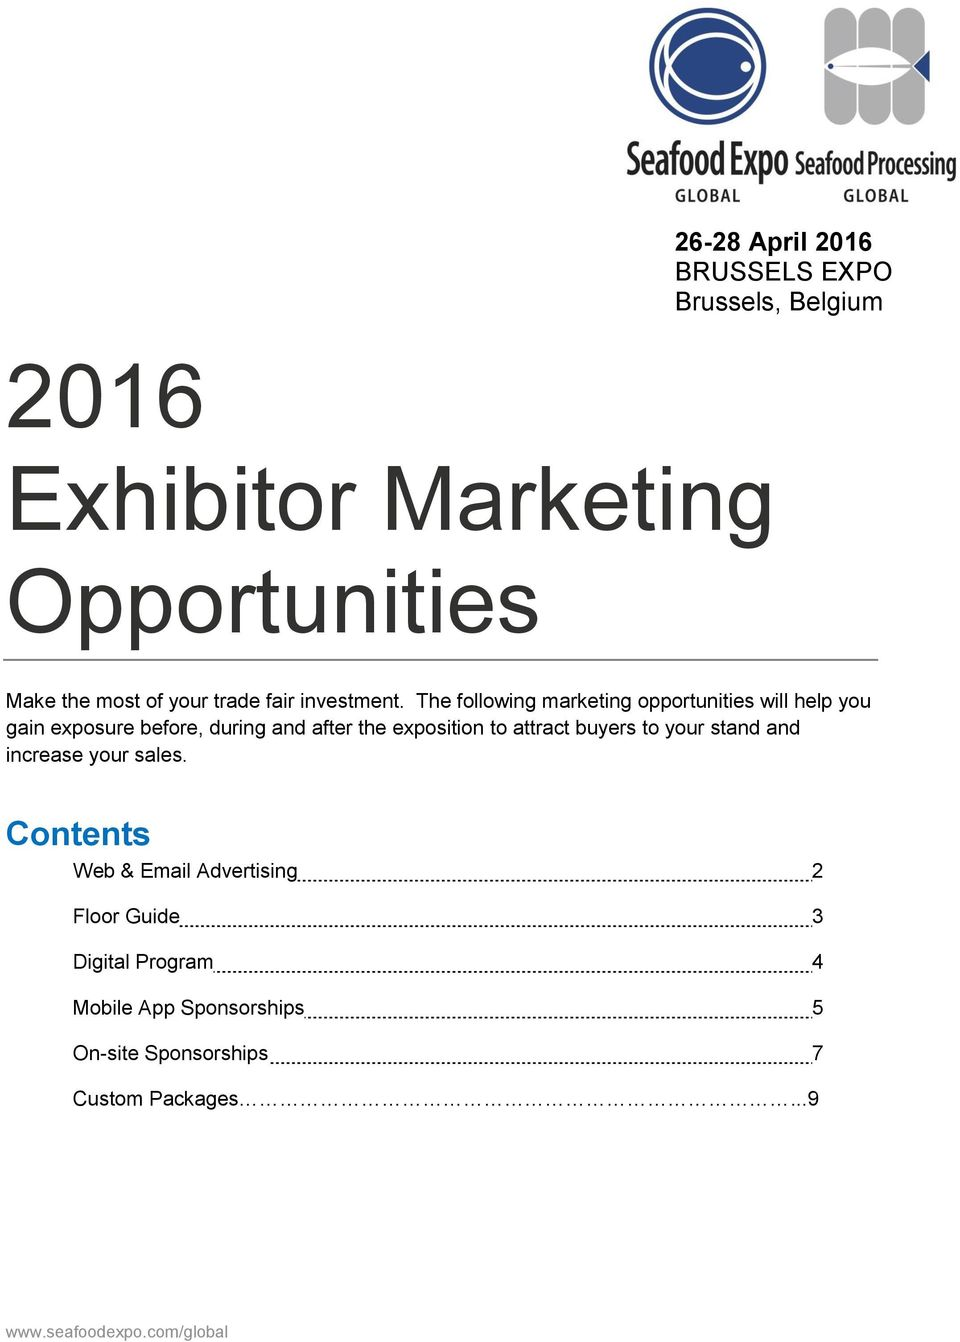 The following marketing opportunities will help you gain exposure before, during and after the exposition to